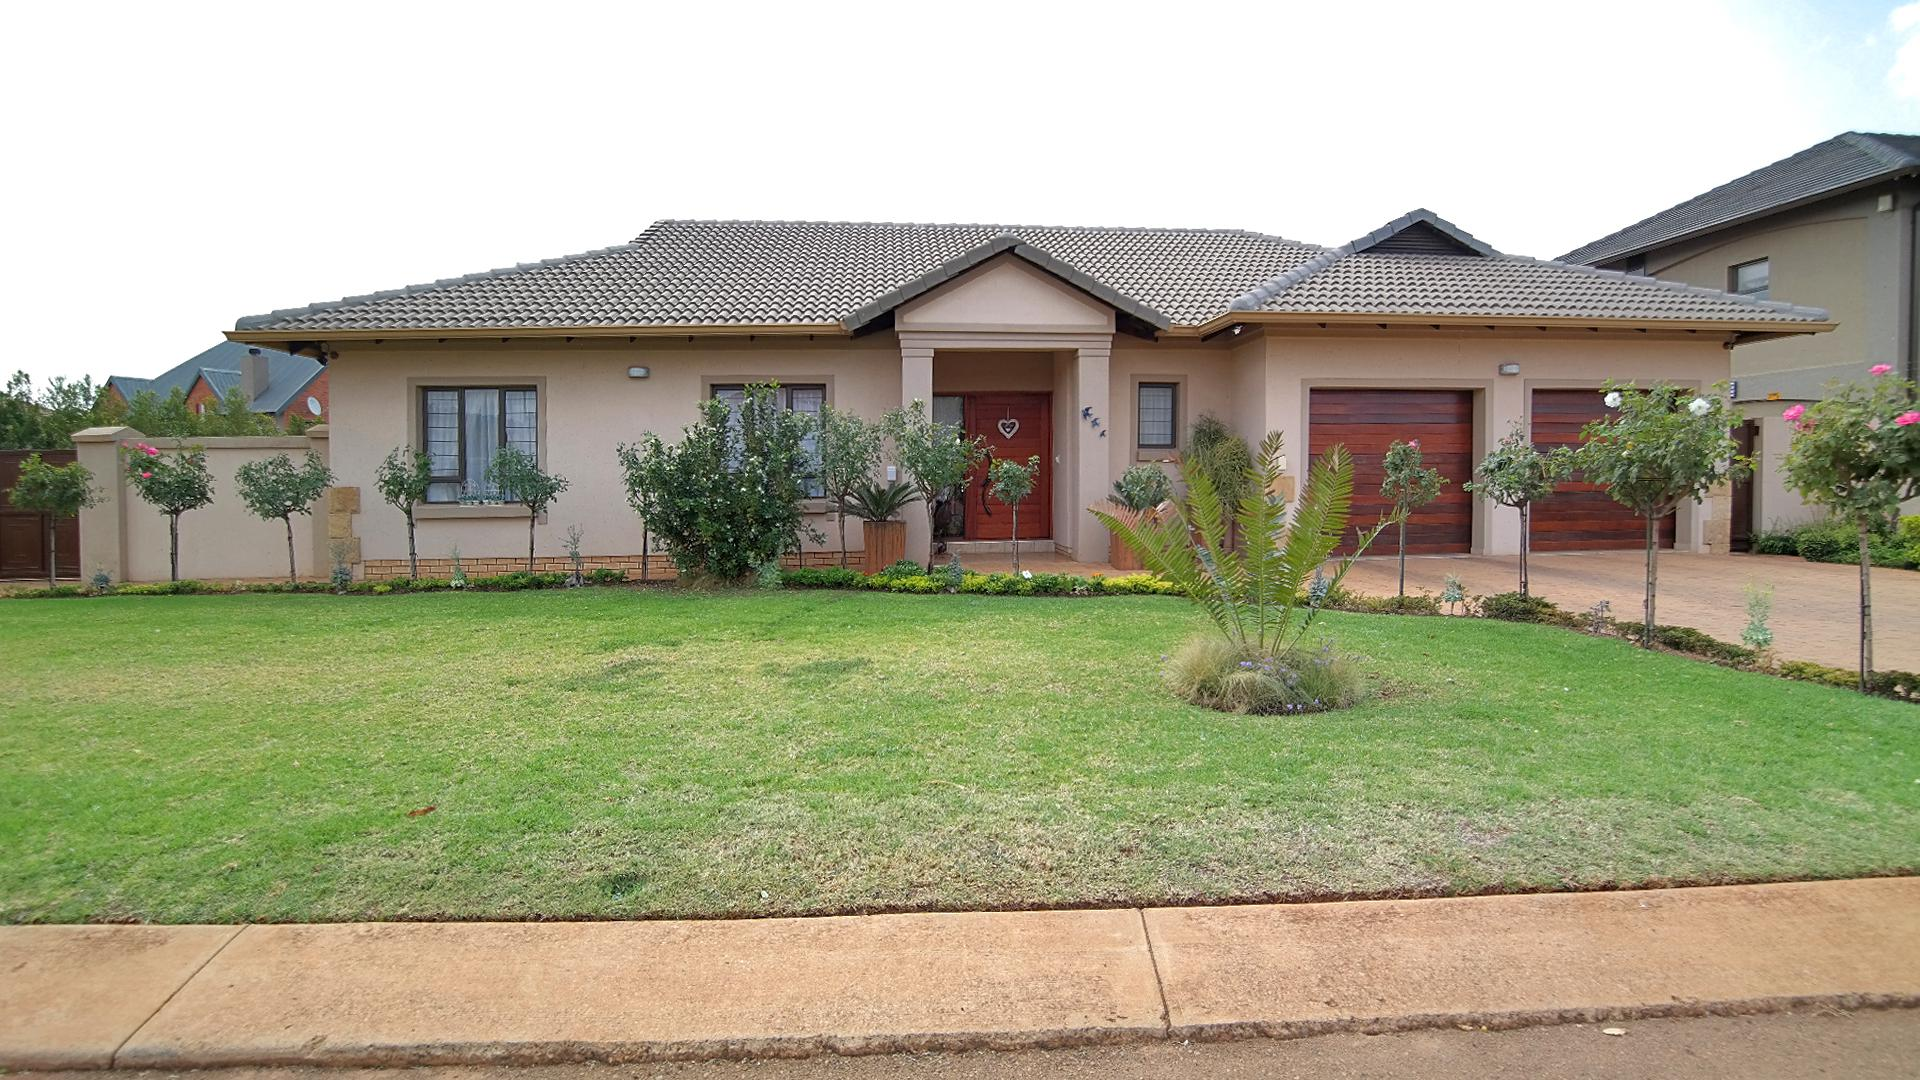 3 Bedroom House for sale in Montana ENT0066308 : photo#0